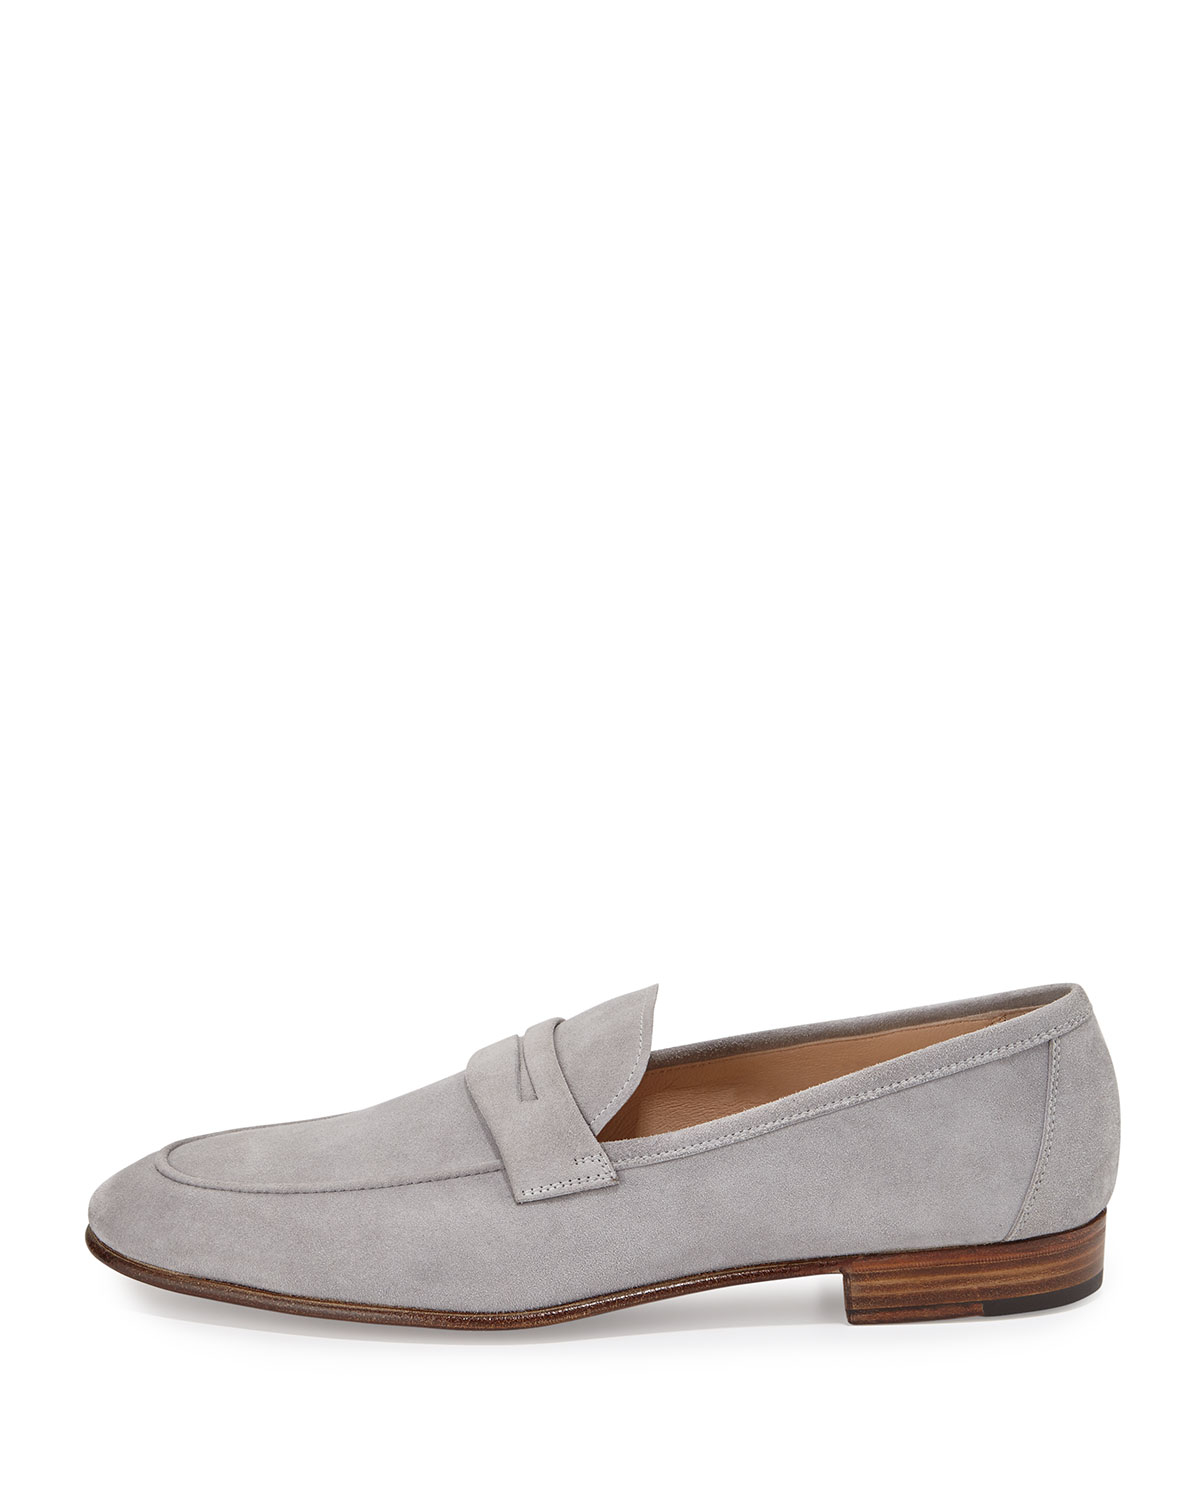 Lyst - Gravati Suede Penny Loafer in Gray for Men